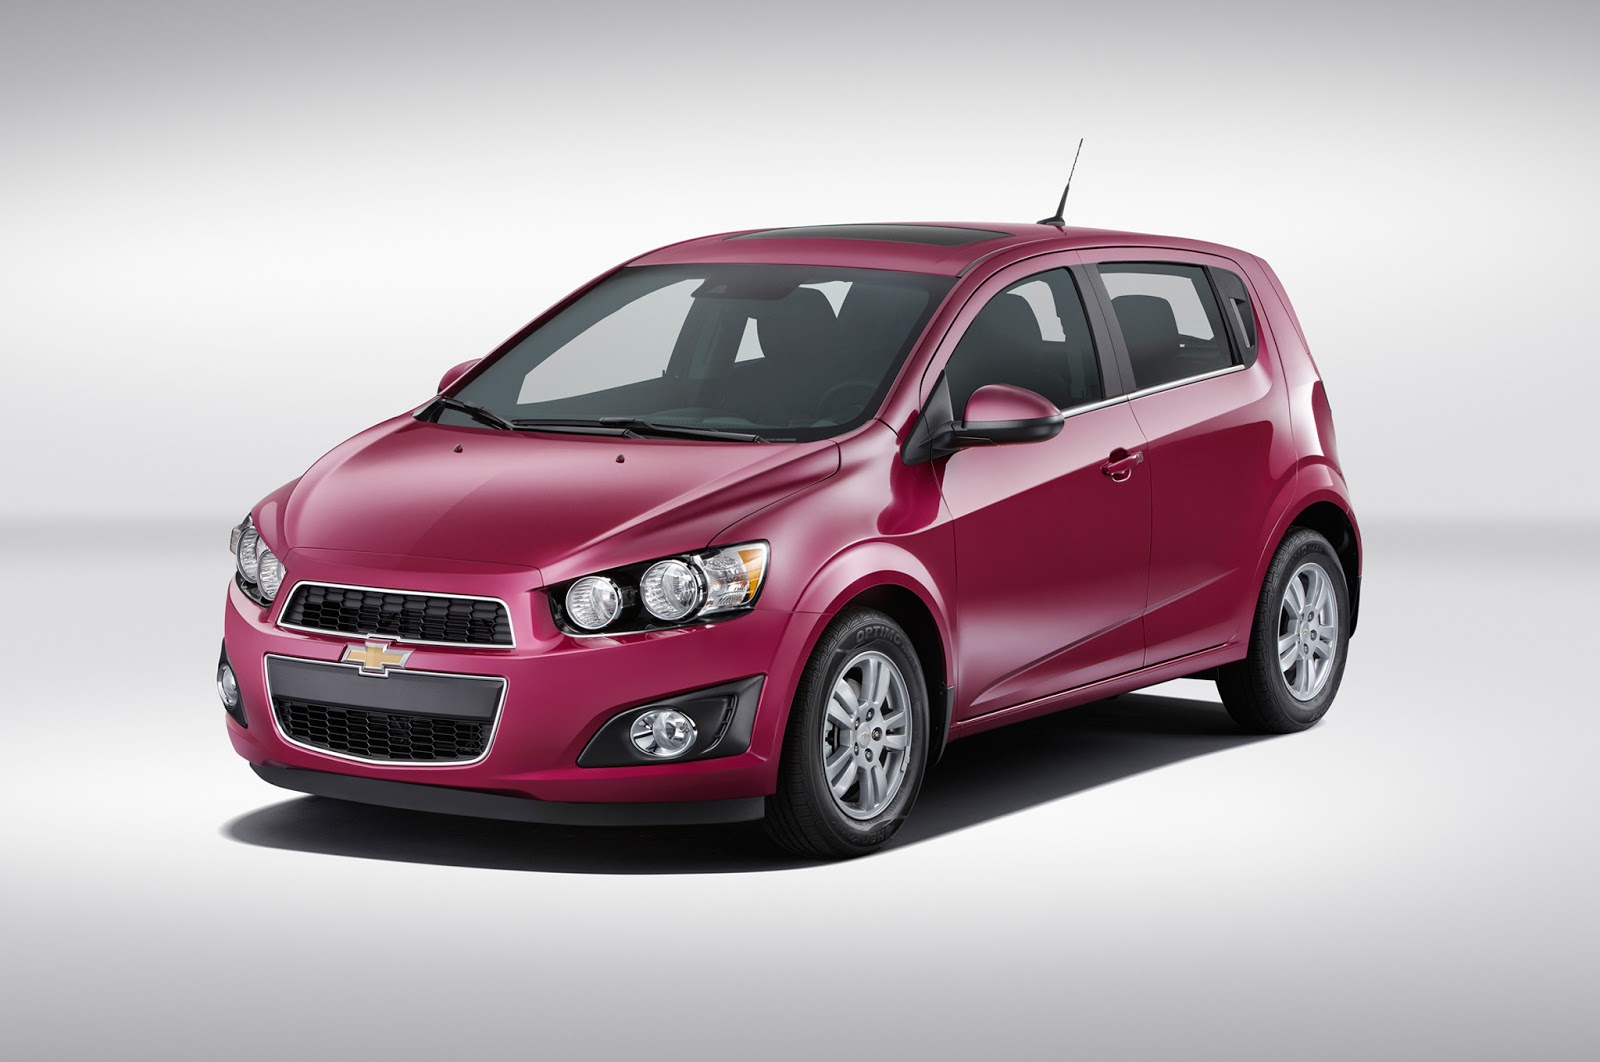 New Limited Edition 2014 Chevrolet Sonic Paint Colors